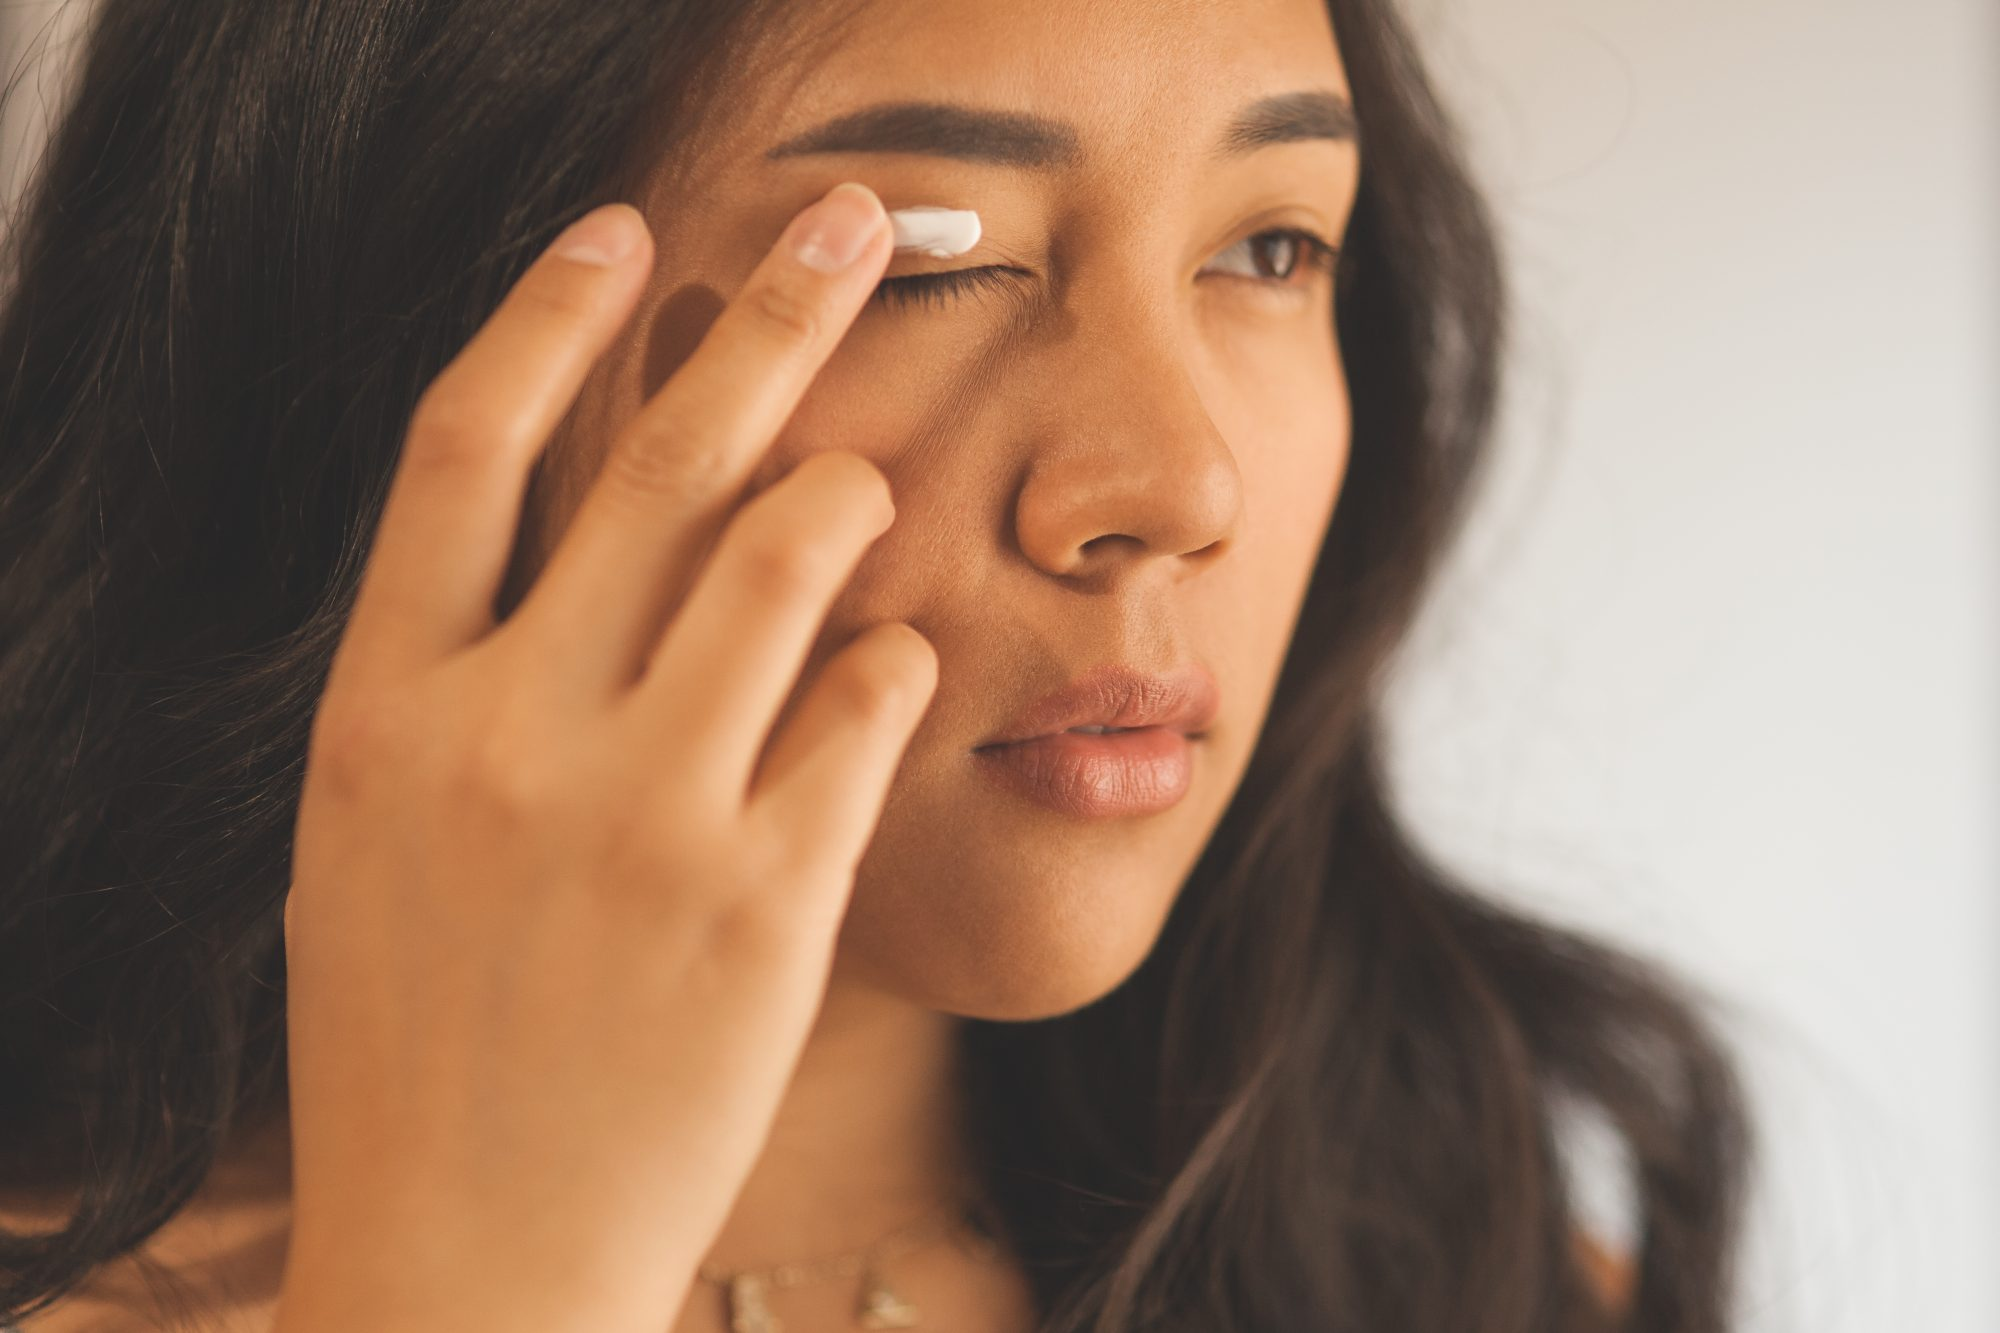 Do you have tiny bumps around your eyes that don't seem to go away? They're not pimples - they're milia. And they might be caused by your eye cream. Heres how to get rid of those pesky bumps for good. - www.theballeronabudget.com